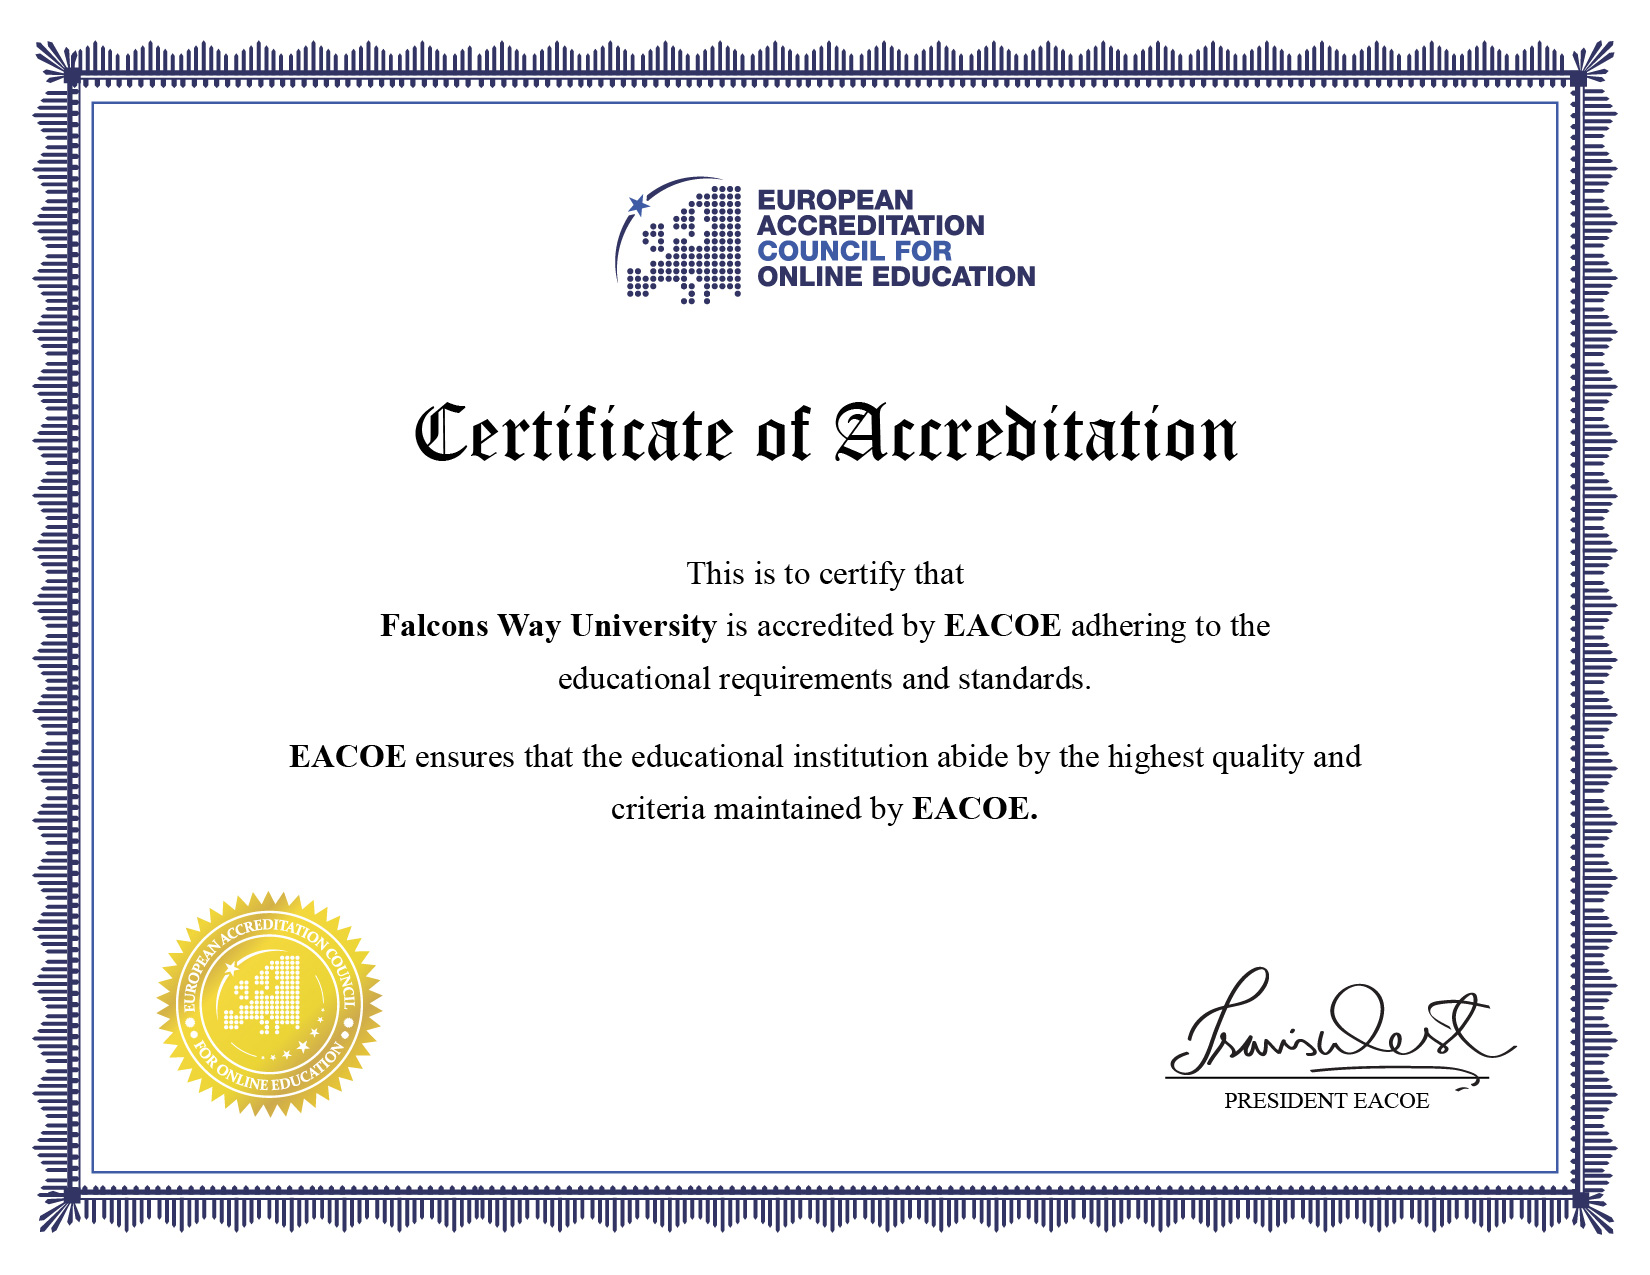 Falcons way university offering internationally accredited degree diploma and certificate programs with an assurance that our programs are recognized and accepted globally xflitez Image collections